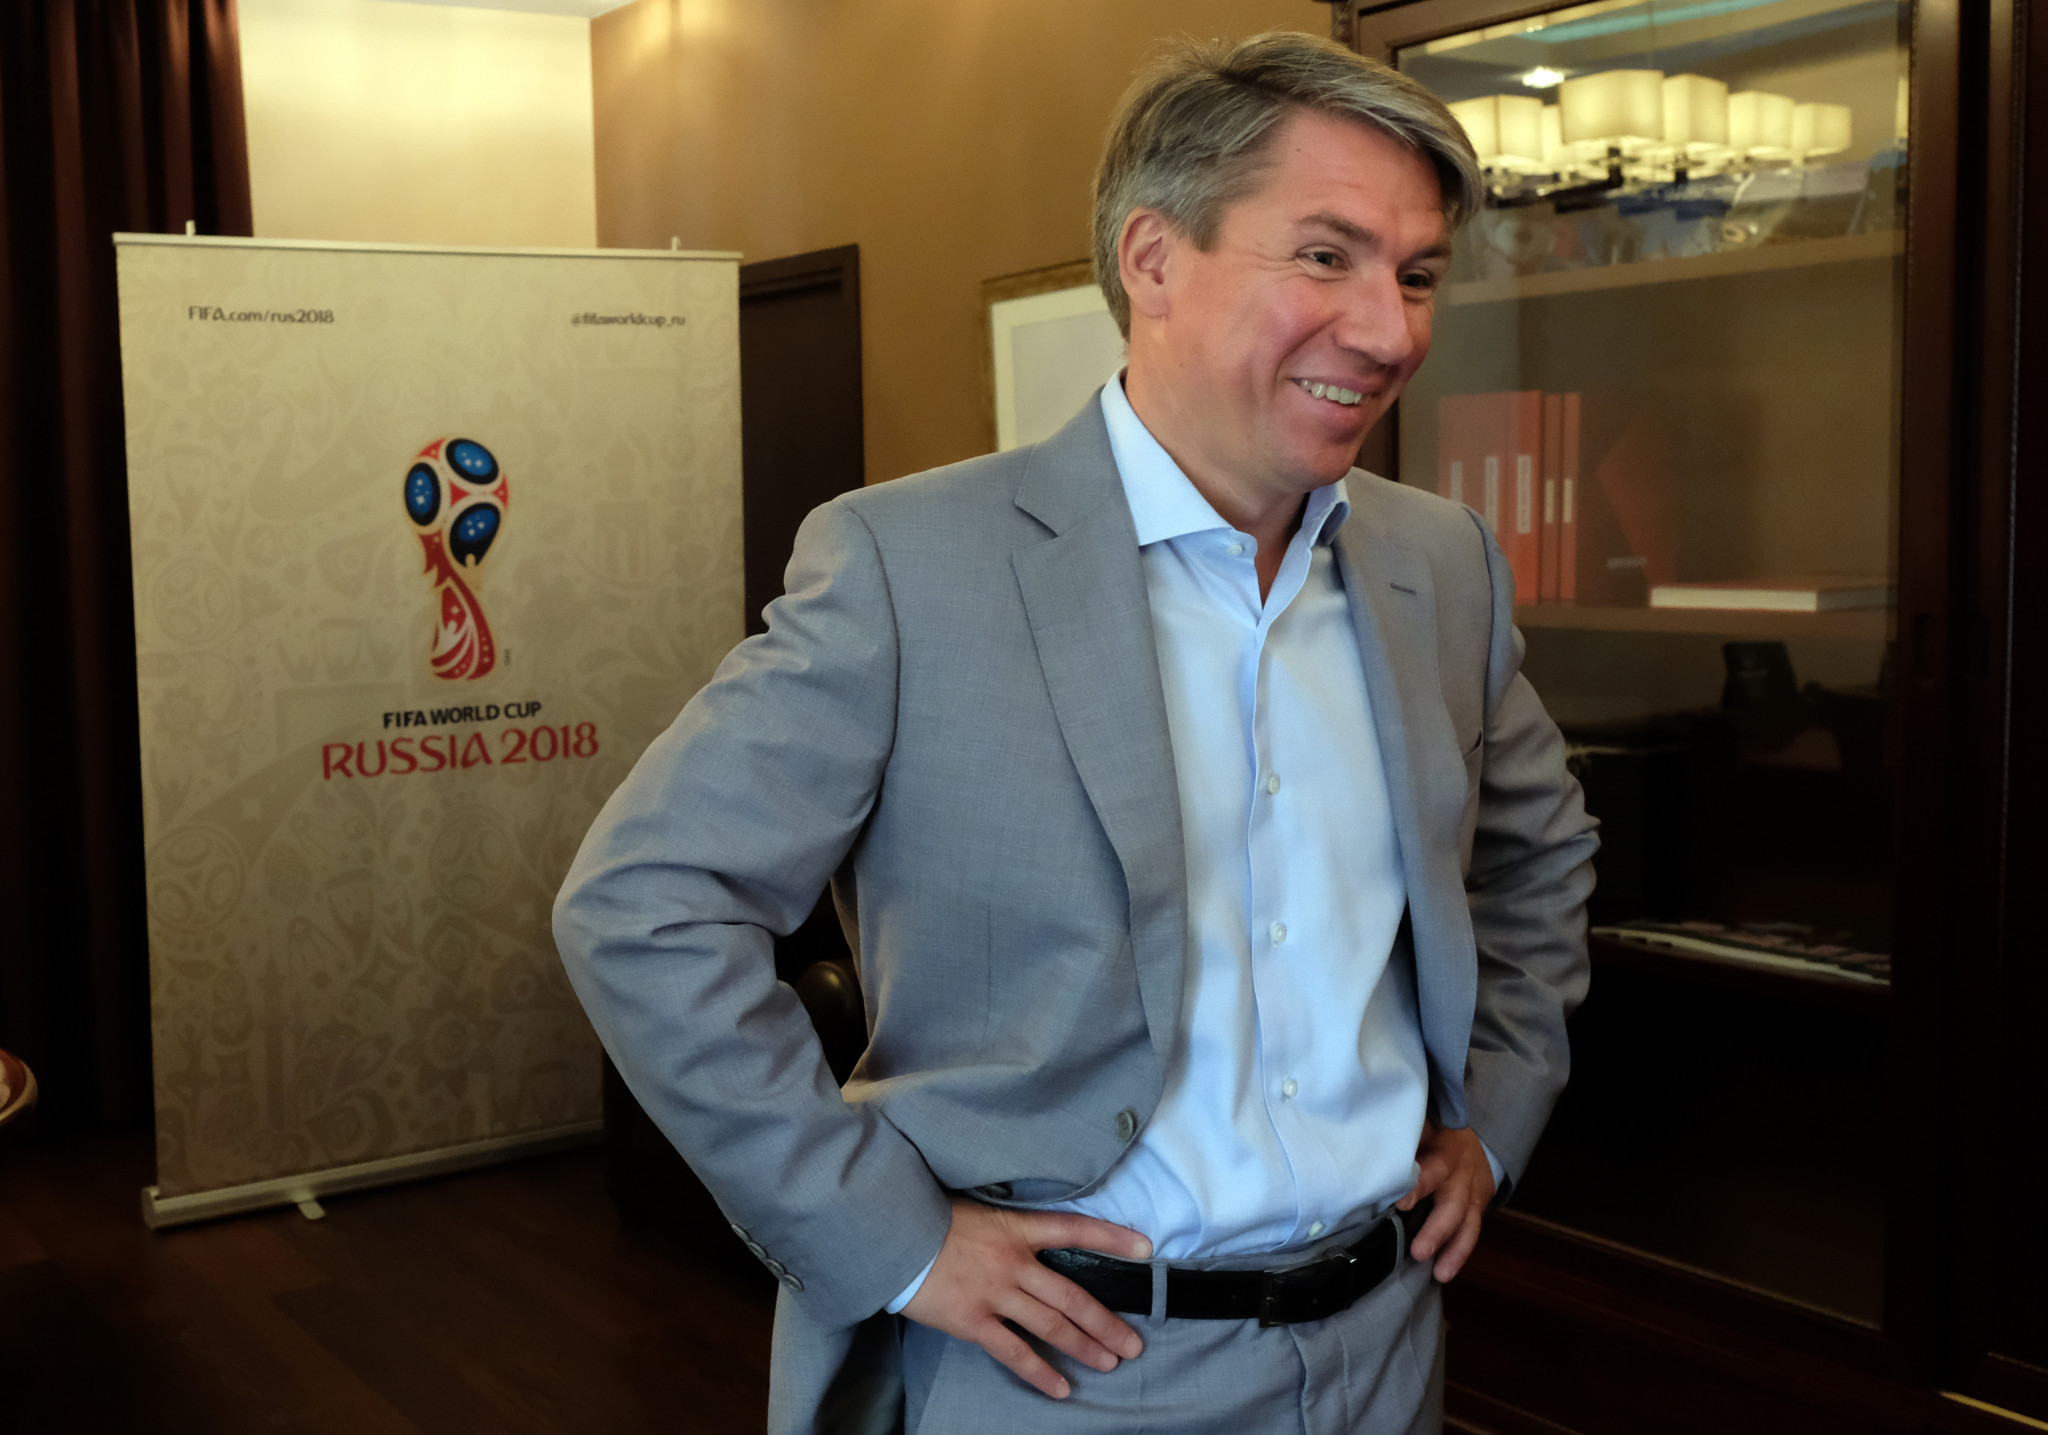 Alexei Sorokin was also chief executive of the Organising Committee for the 2018 FIFA World Cup, and vowed to deliver the UEFA Champions League